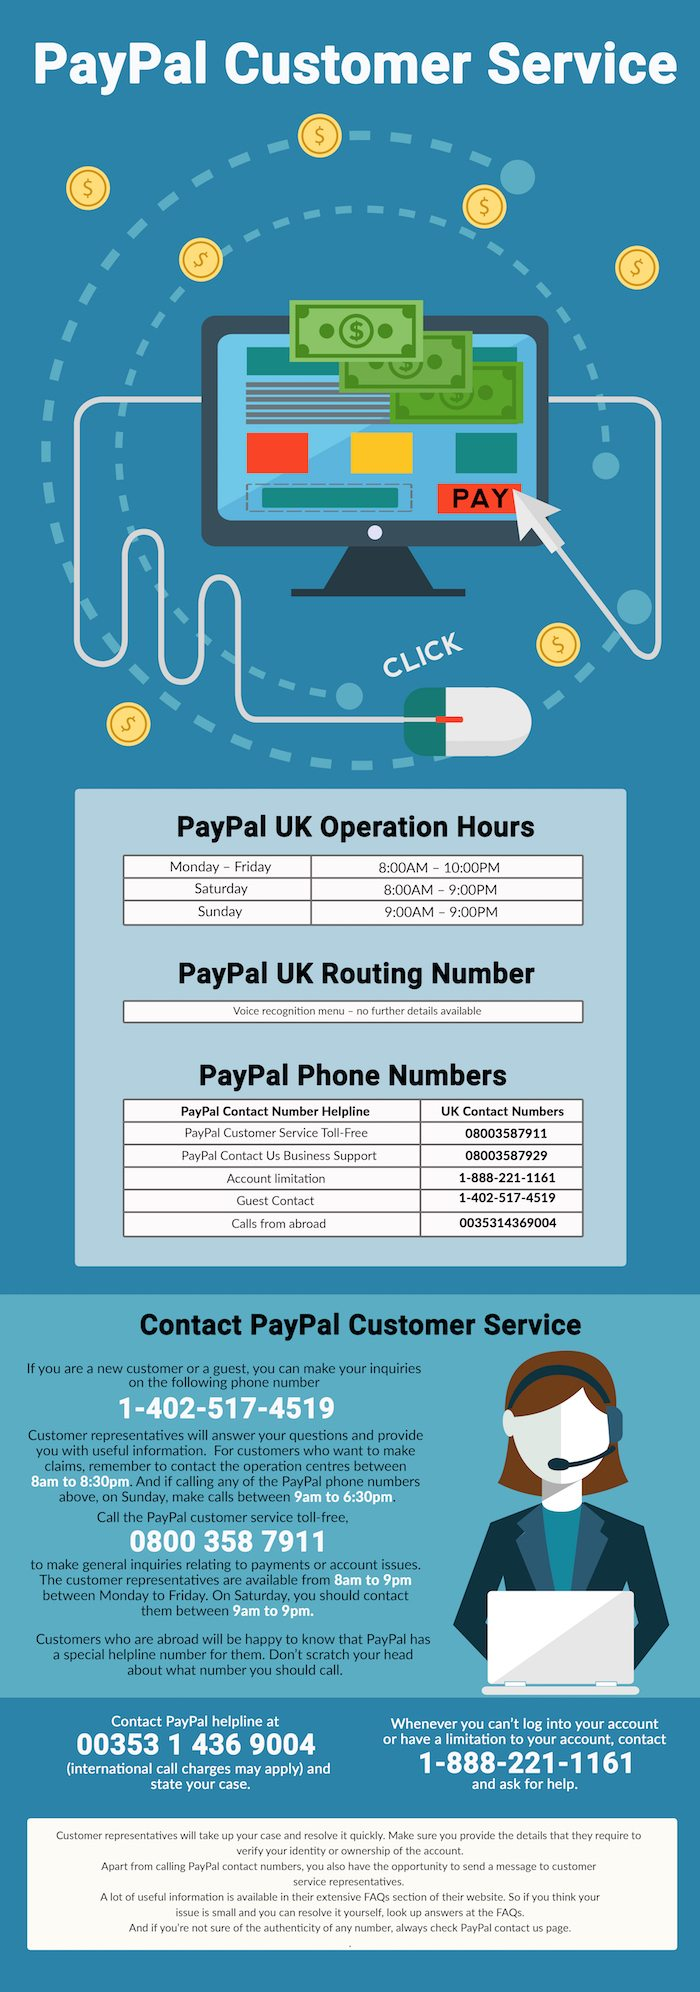 PayPal Customer Service. ; Freephone from a UK landline or UK mobile number. If you are calling from outside the UK, please call 1 (international call charges may apply and are dependent on the terms of agreement with your network provider). Customer Service hours. For general queries, hours of operations are.